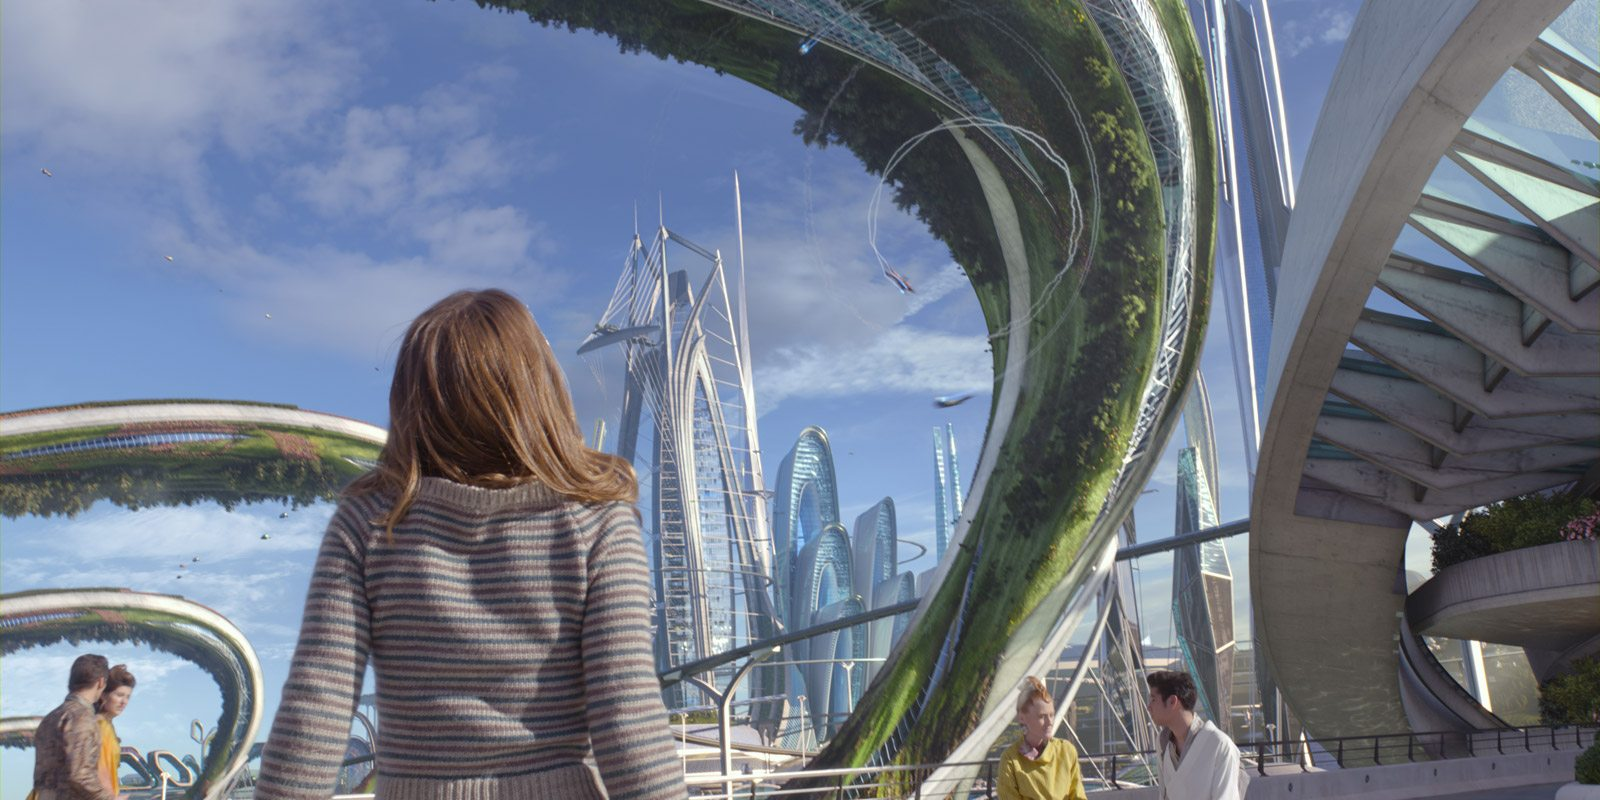 8 Things Parents Should Know About 'Tomorrowland'